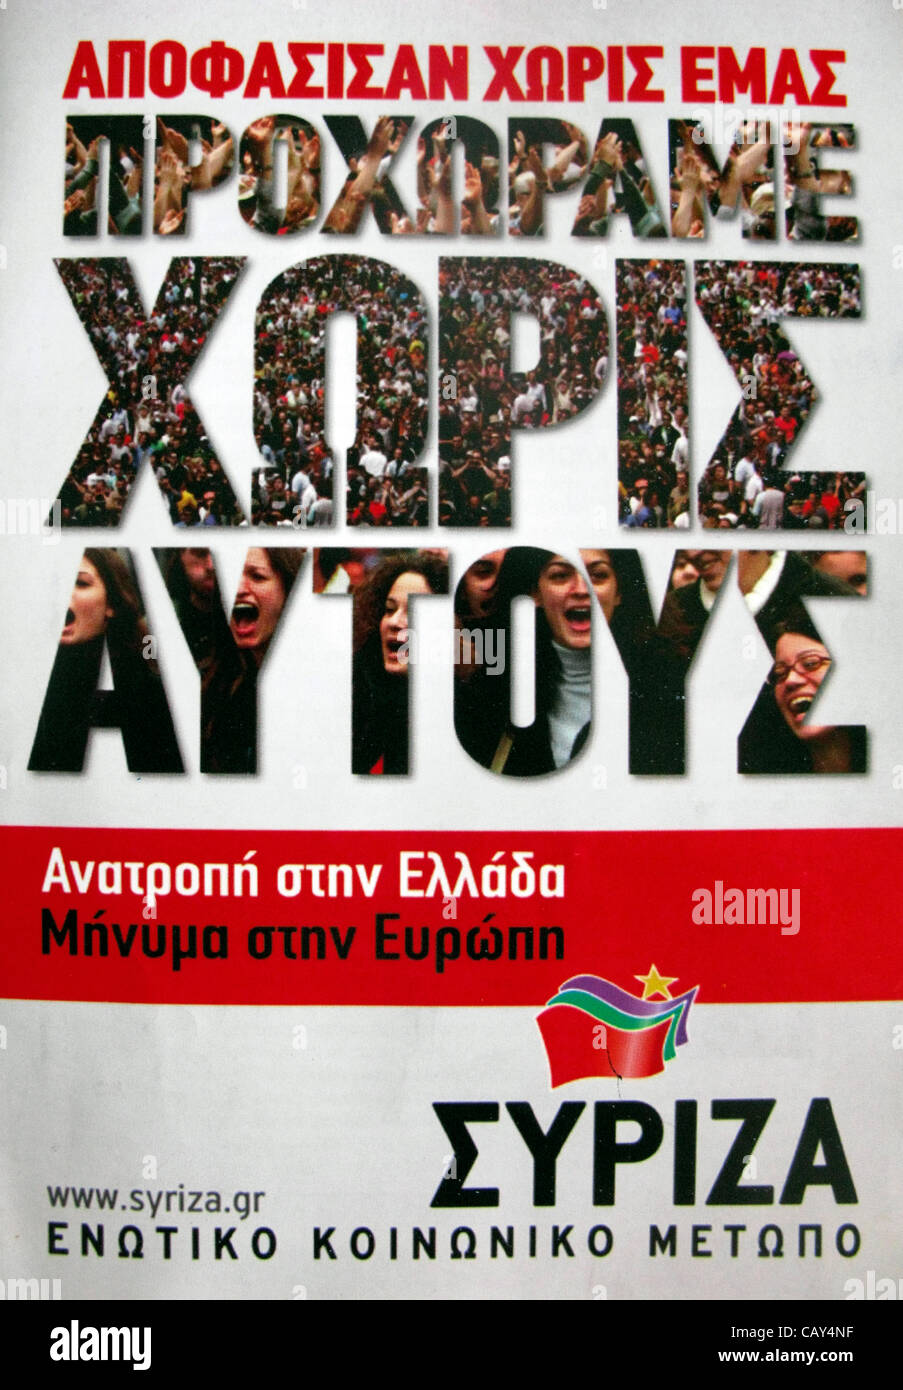 Greek Elections 2012. Political Leaflet for the Radical Left Syriza Party - Stock Image